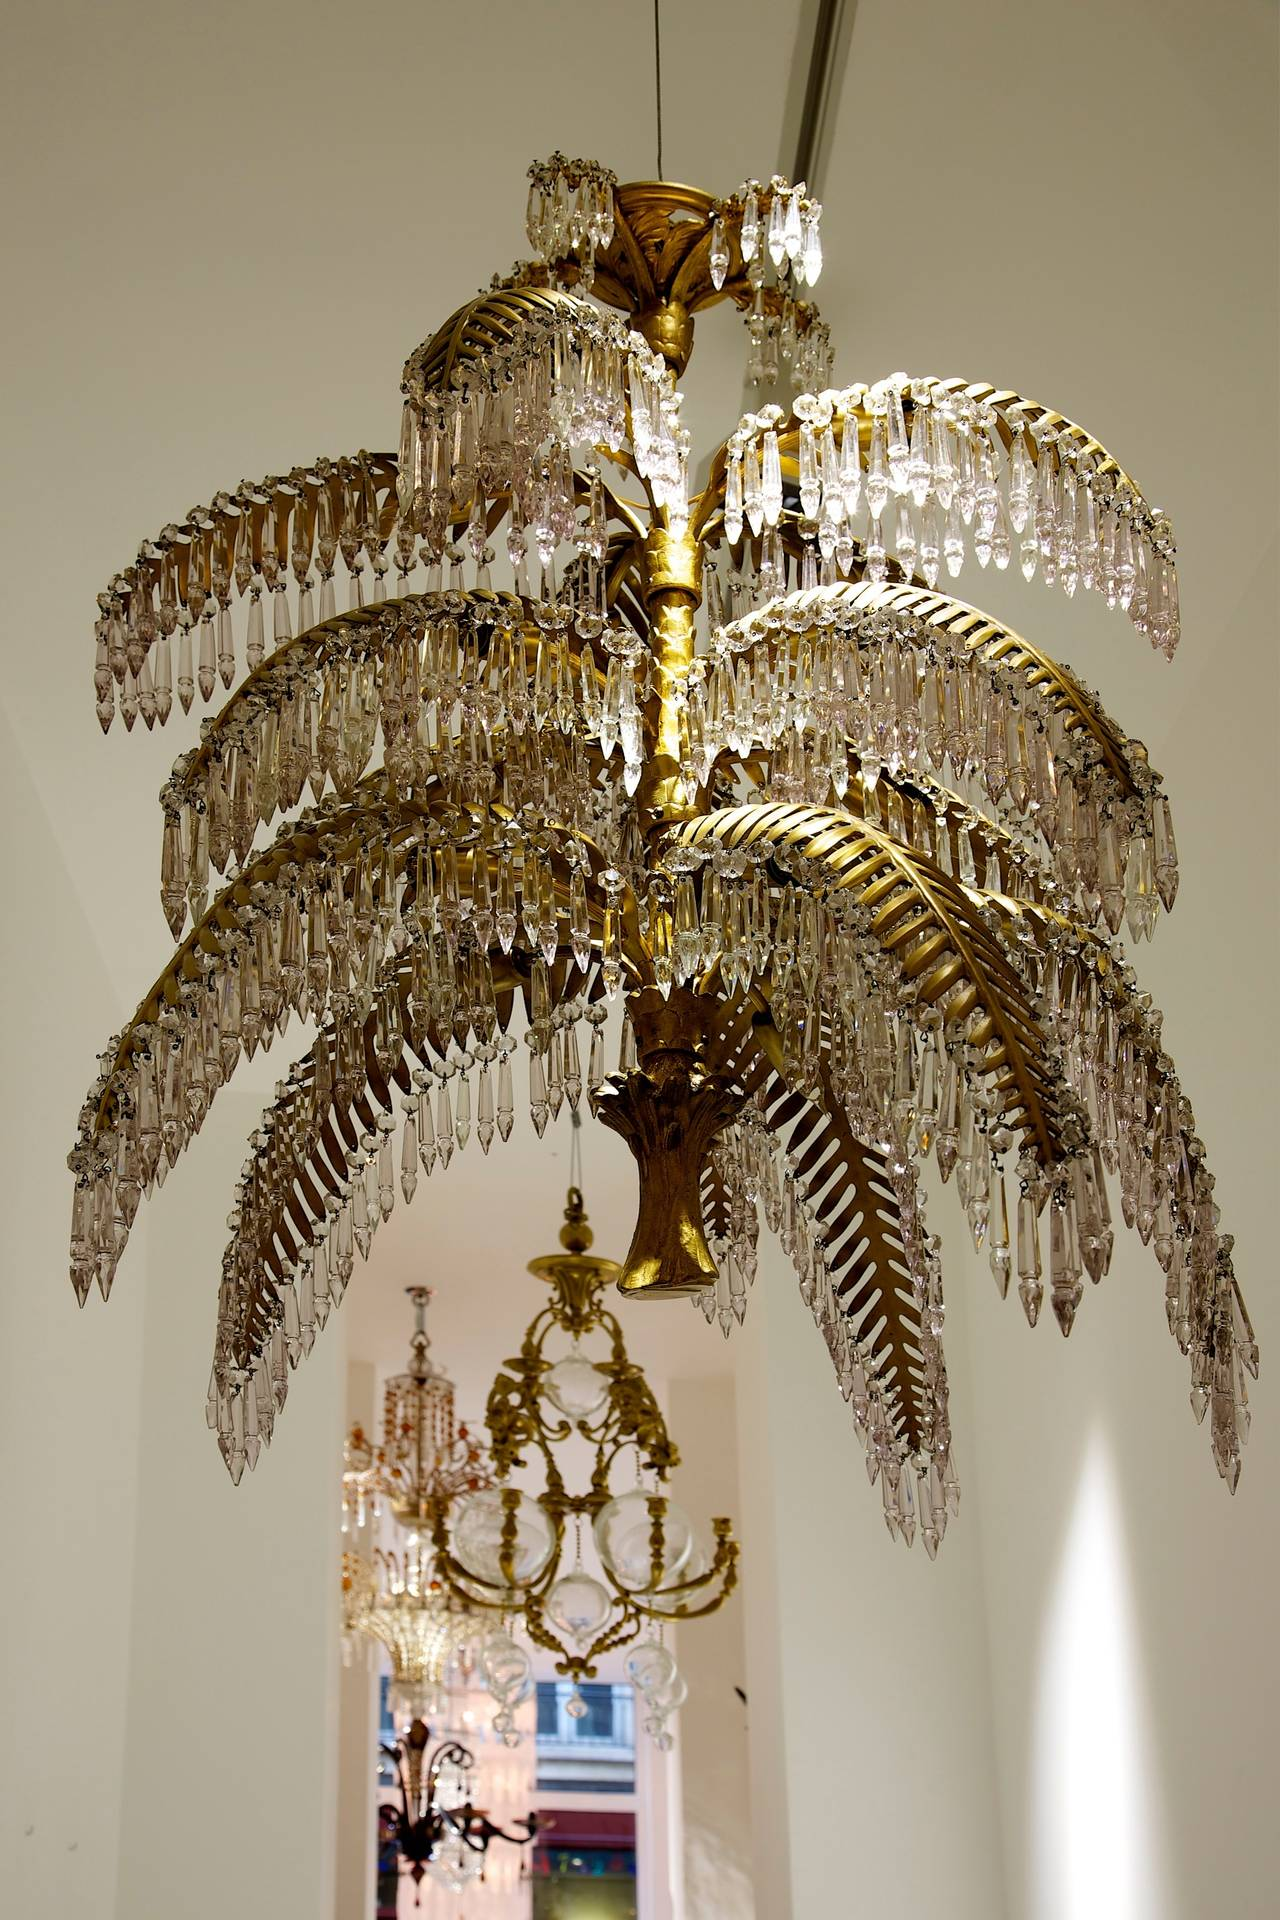 Joseph hoffmann and bakalowitz palm tree chandelier for sale at 1stdibs joseph hoffmann and bakalowitz palm tree chandelier bibliography model shown in the exhi aloadofball